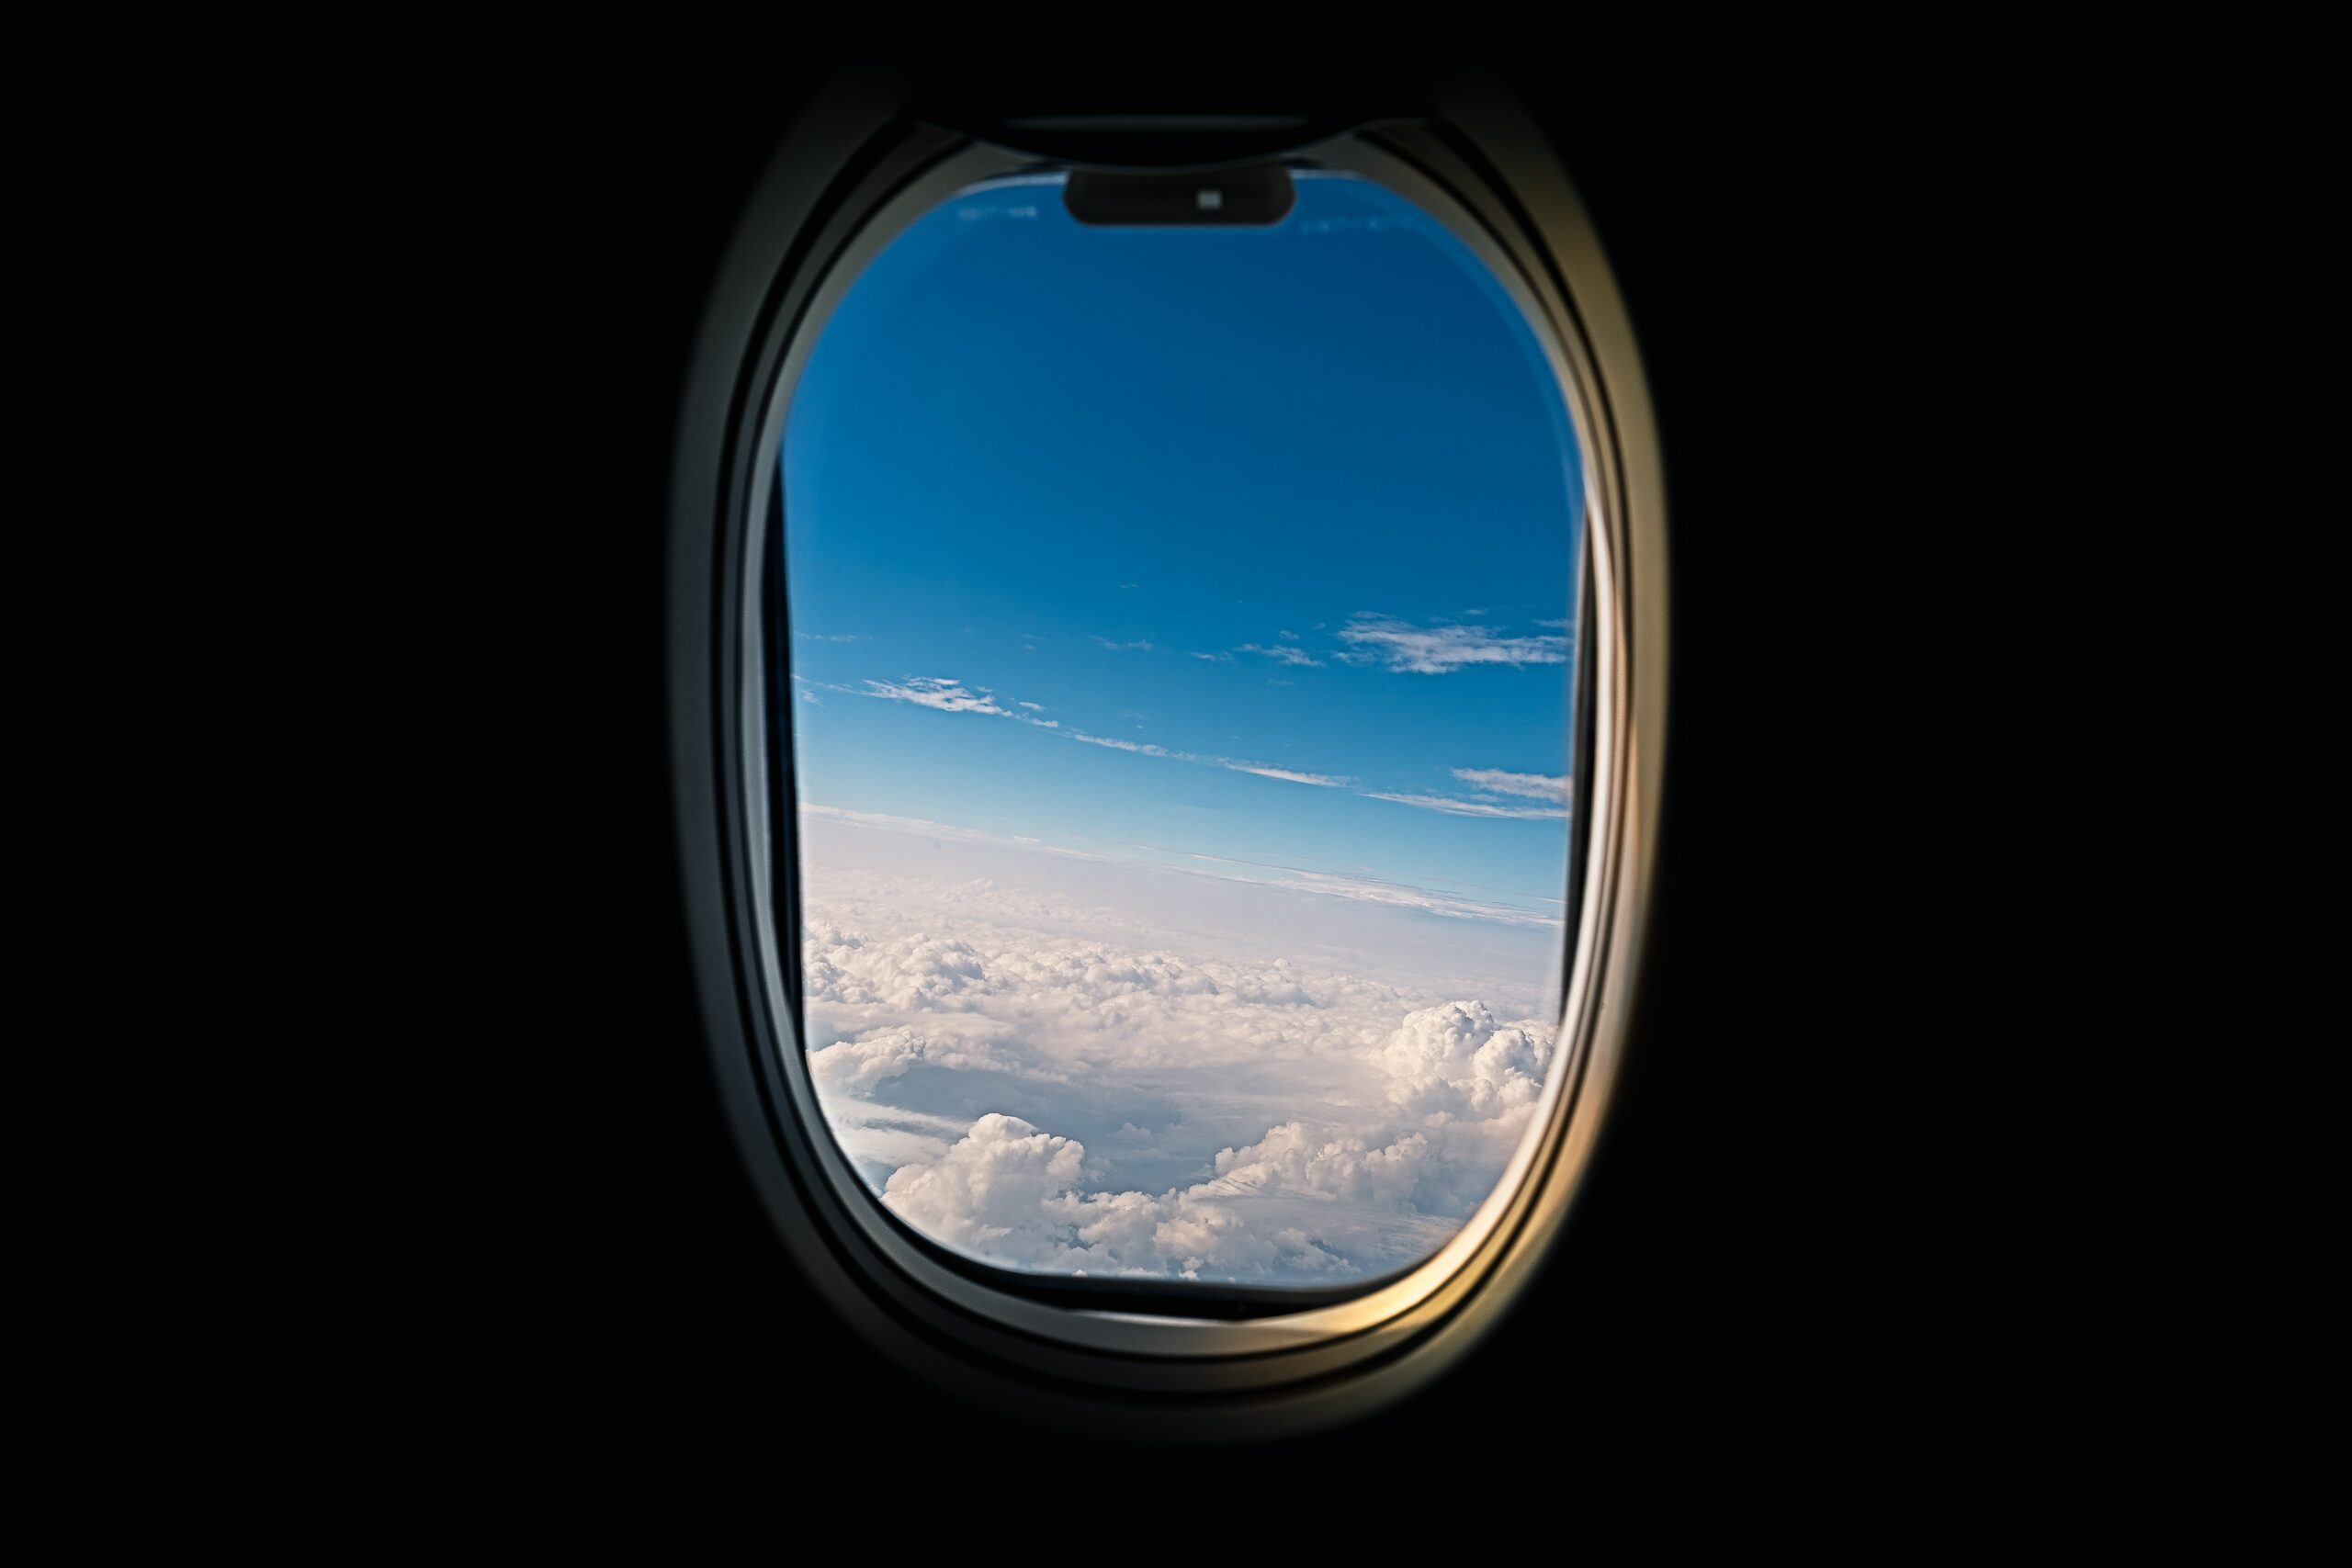 airline window viewing white clouds